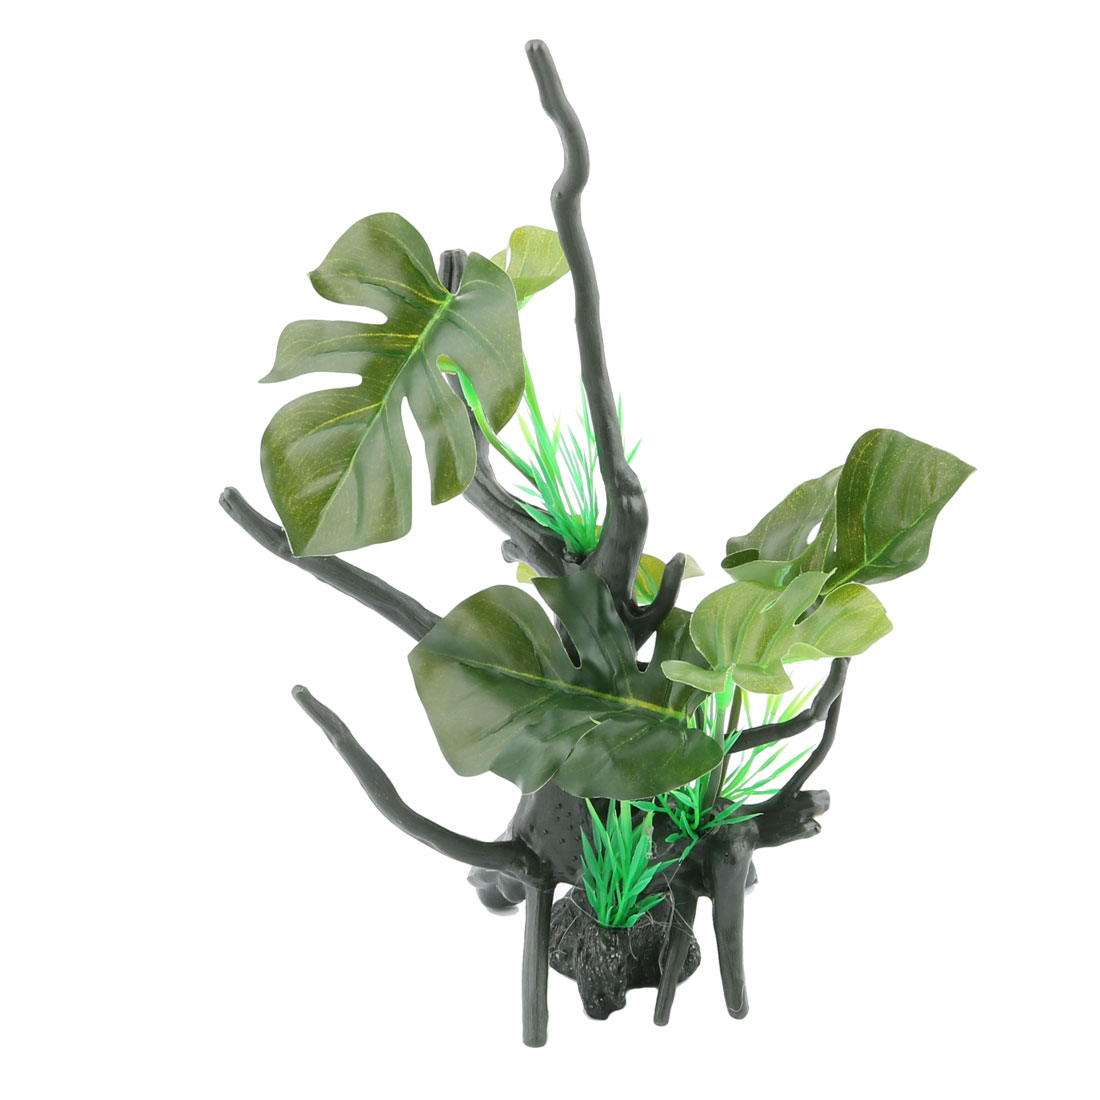 Artificial Decoration Tree Branches Freshwater Fish Tank Aquarium Plant